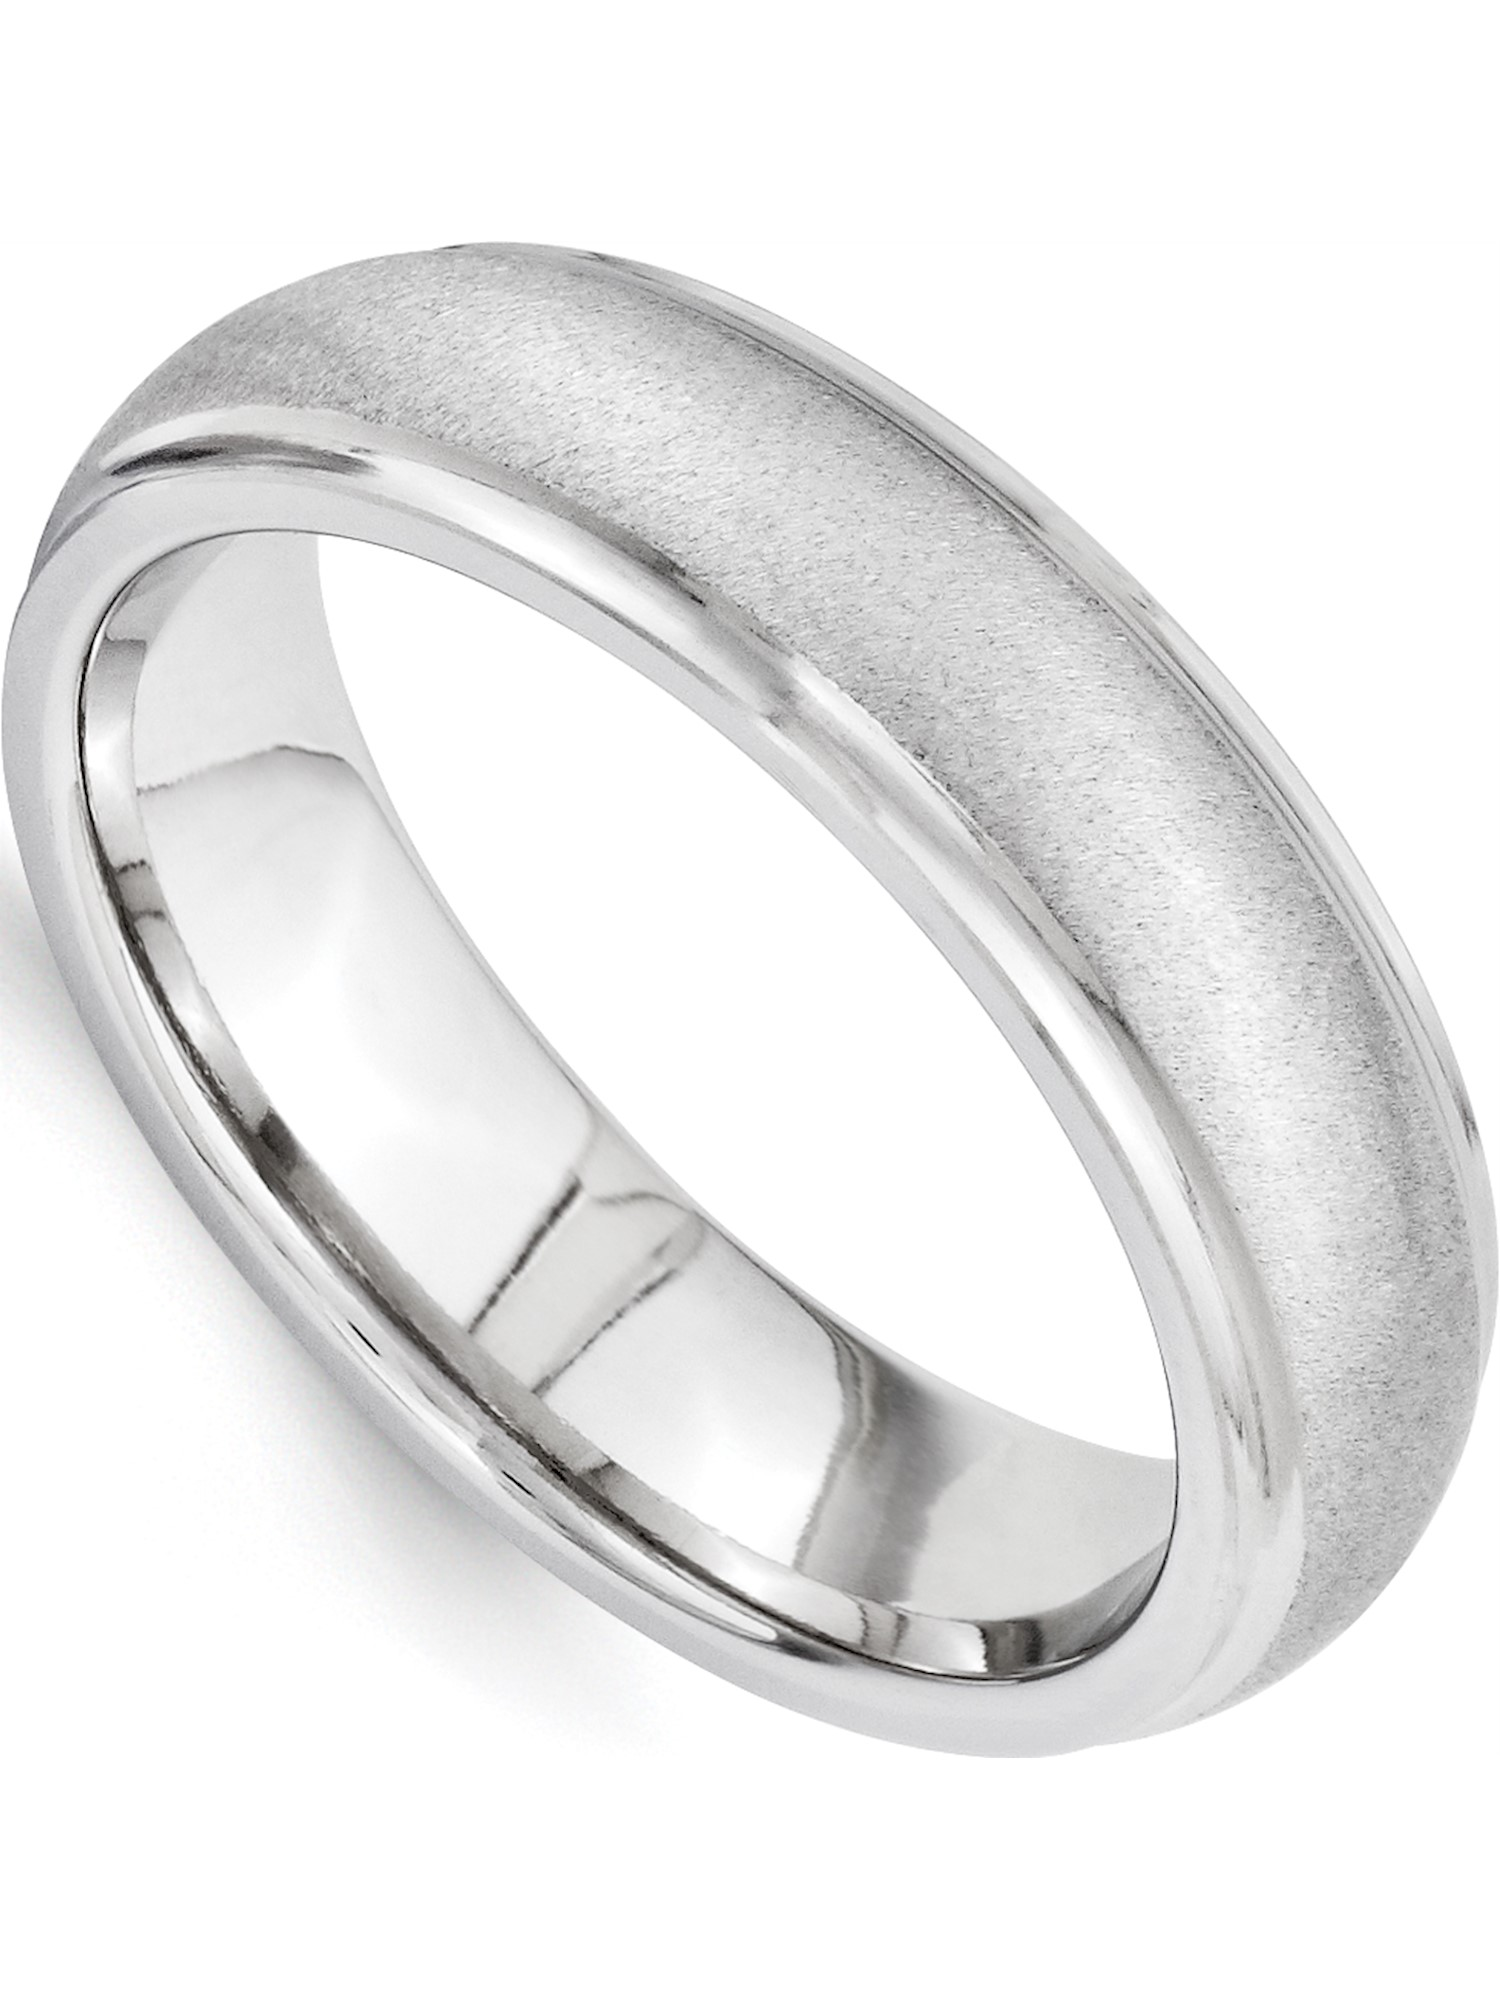 Titanium Polished //Stone Finish Center Grooved Edge Sterling Inlay Band